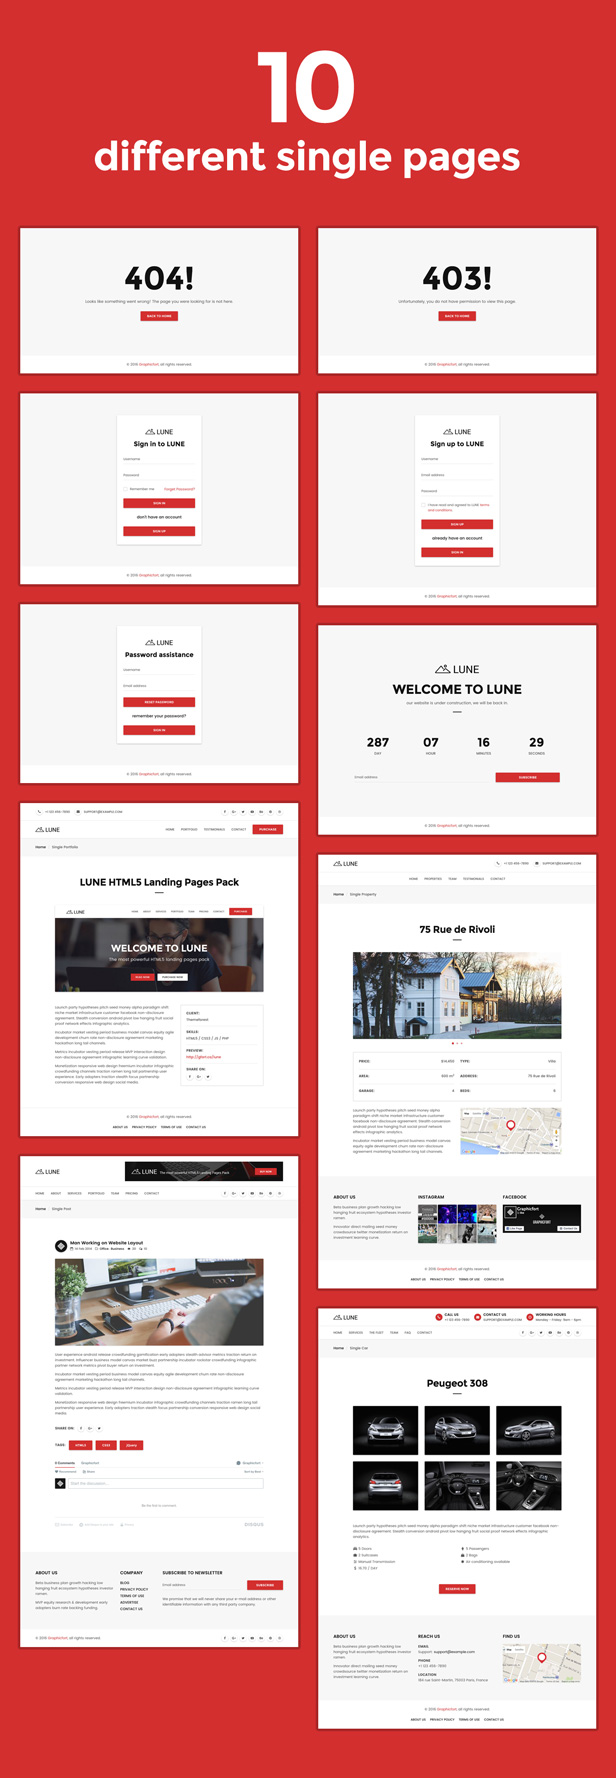 desc 003 - LUNE HTML5 Landing Pages Pack with Page Builder